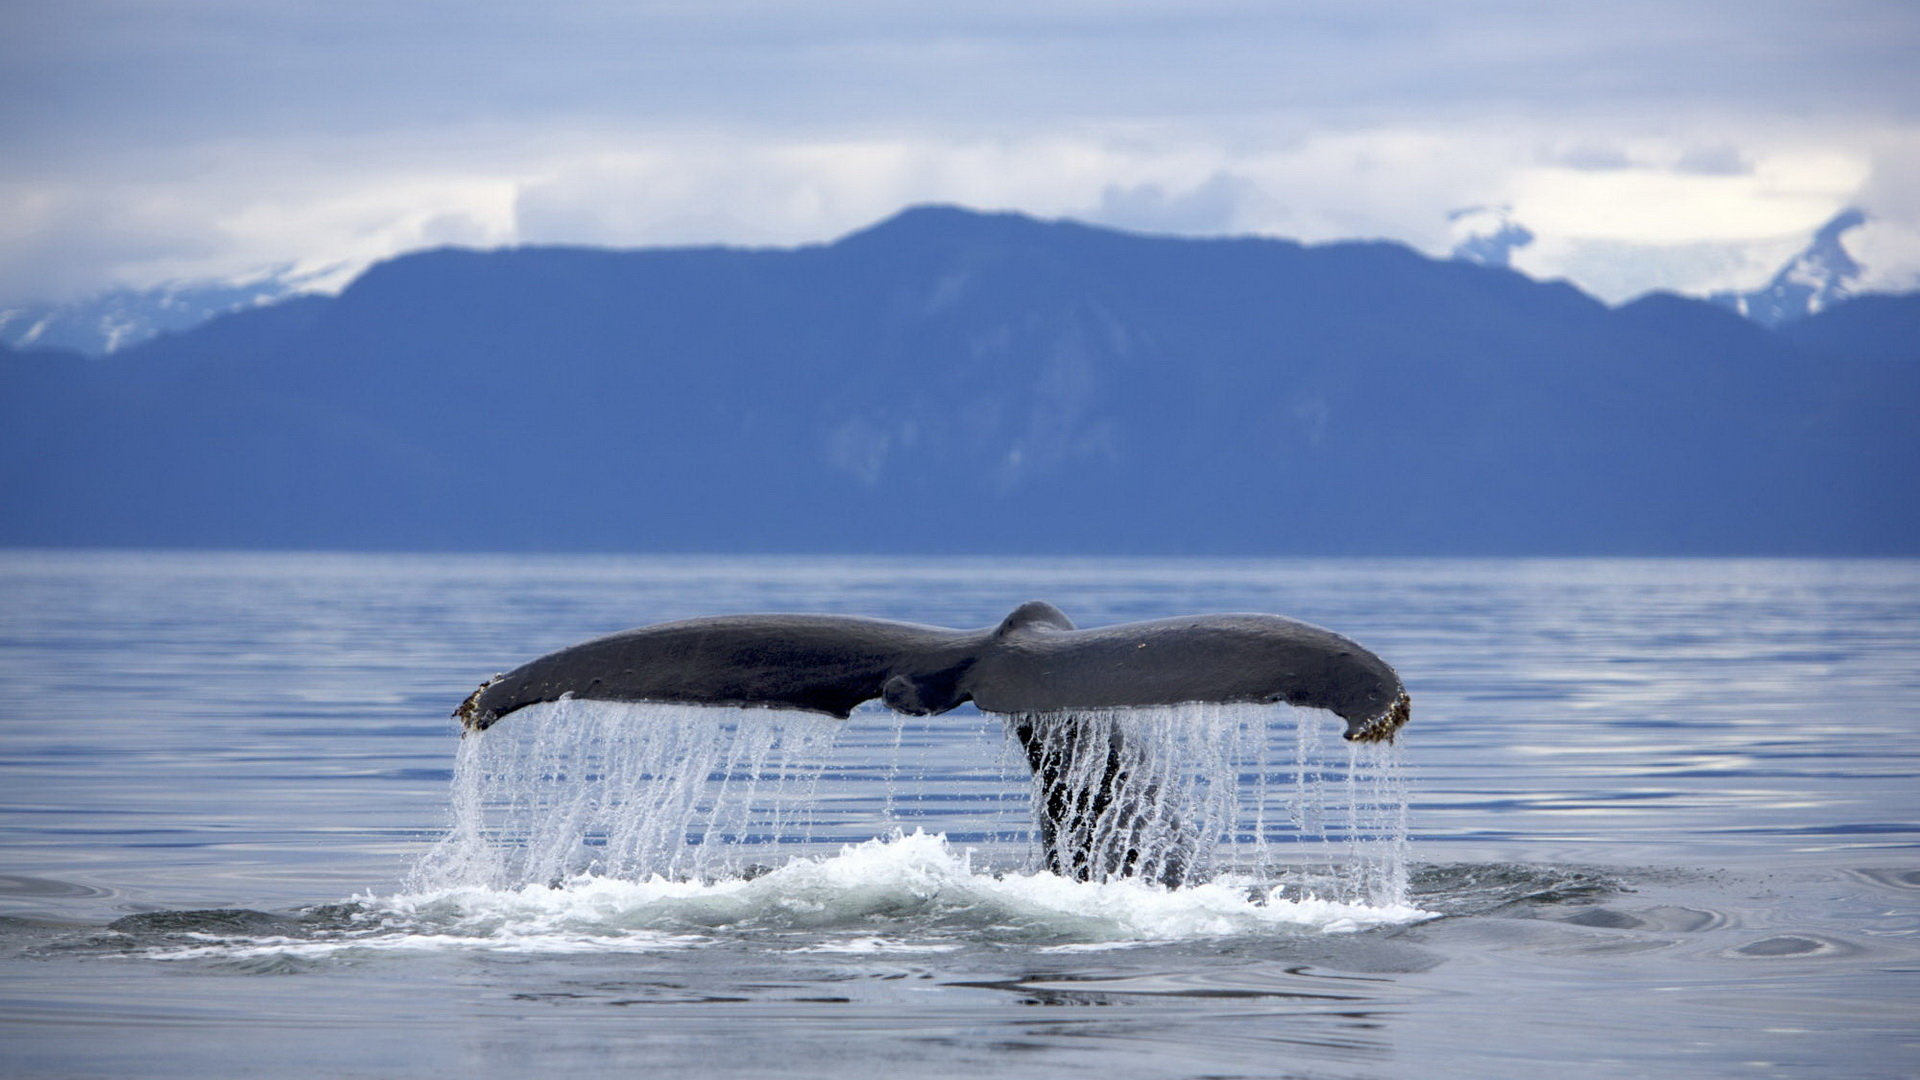 Whale Wallpapers 1920x1080 Full Hd 1080p Desktop Backgrounds